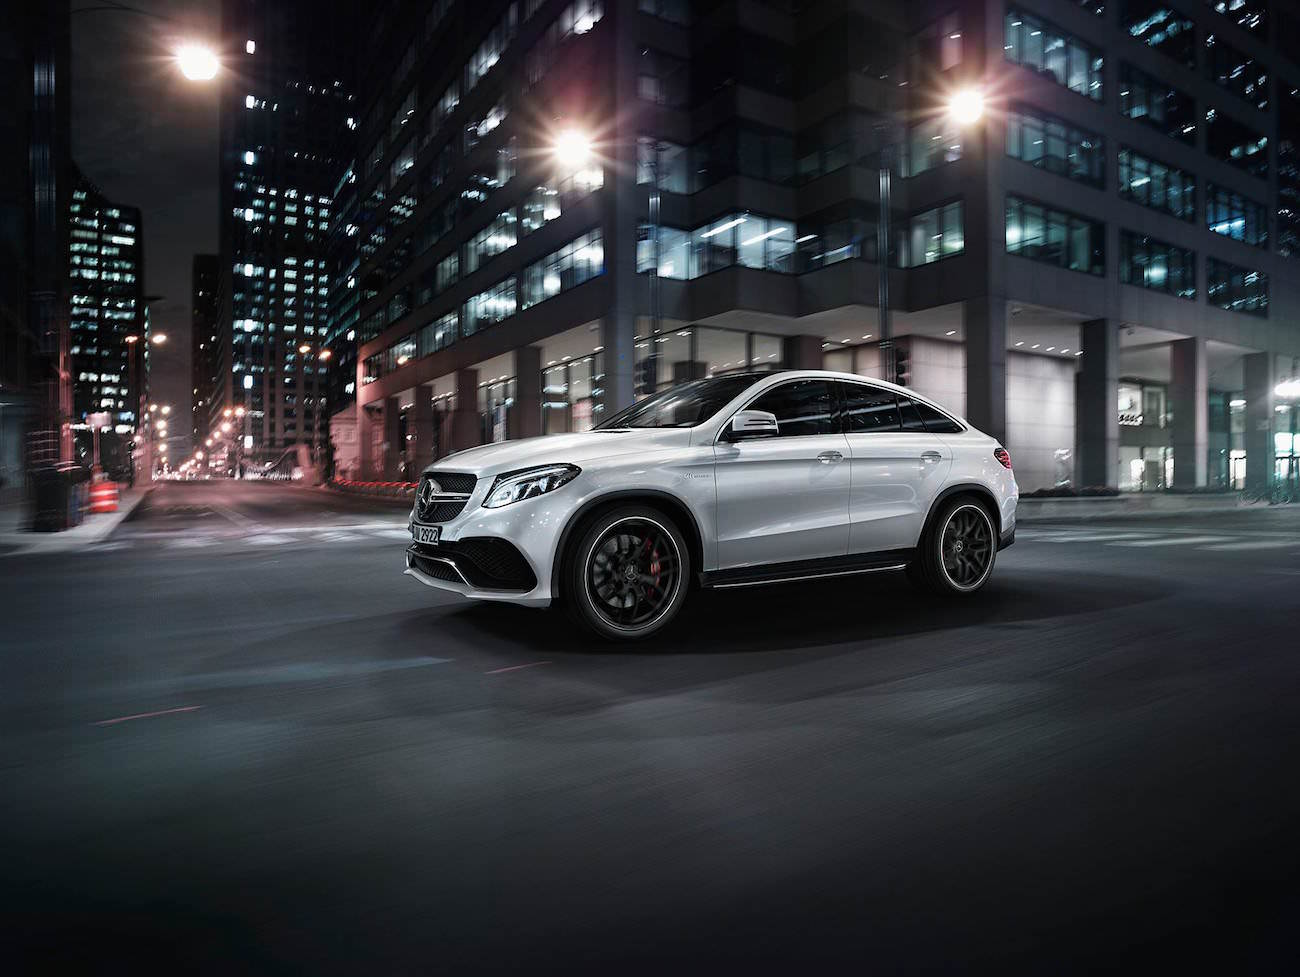 Gle 63s Amg >> Mercedes Amg Gle 63s The Sporty And Refined Coupe